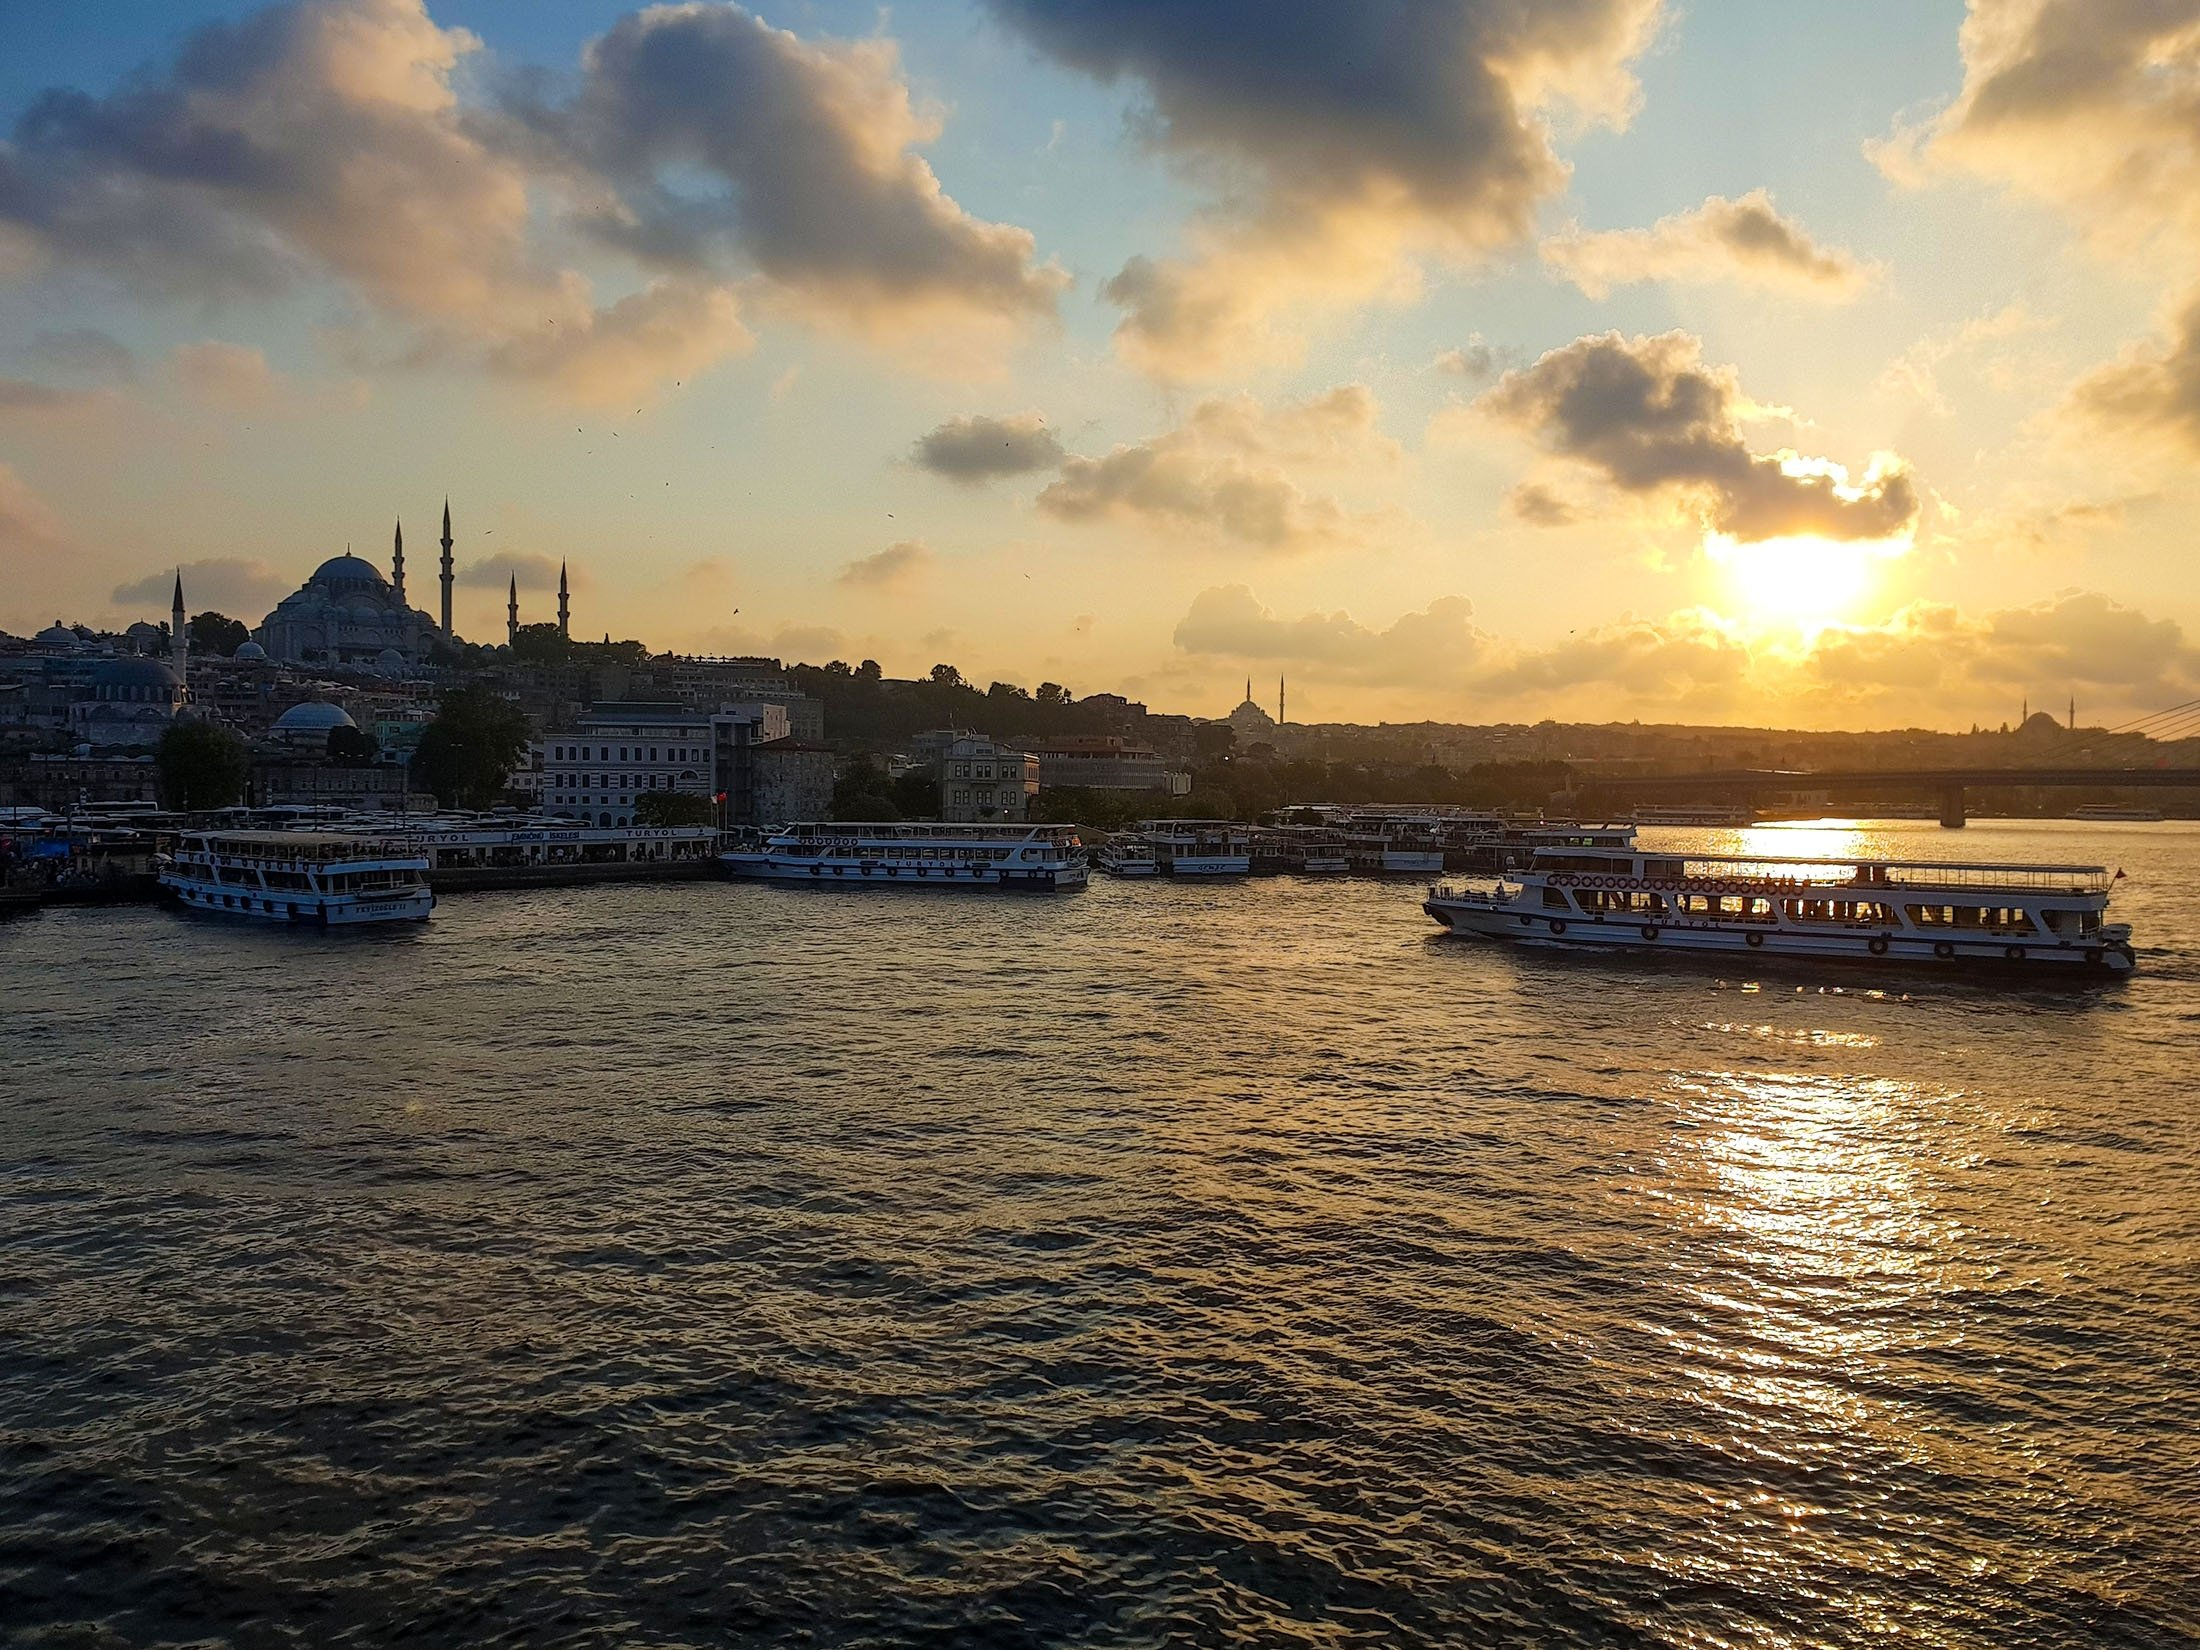 Sunset at the historic peninsula of Istanbul. (Photo by Argun Konuk)